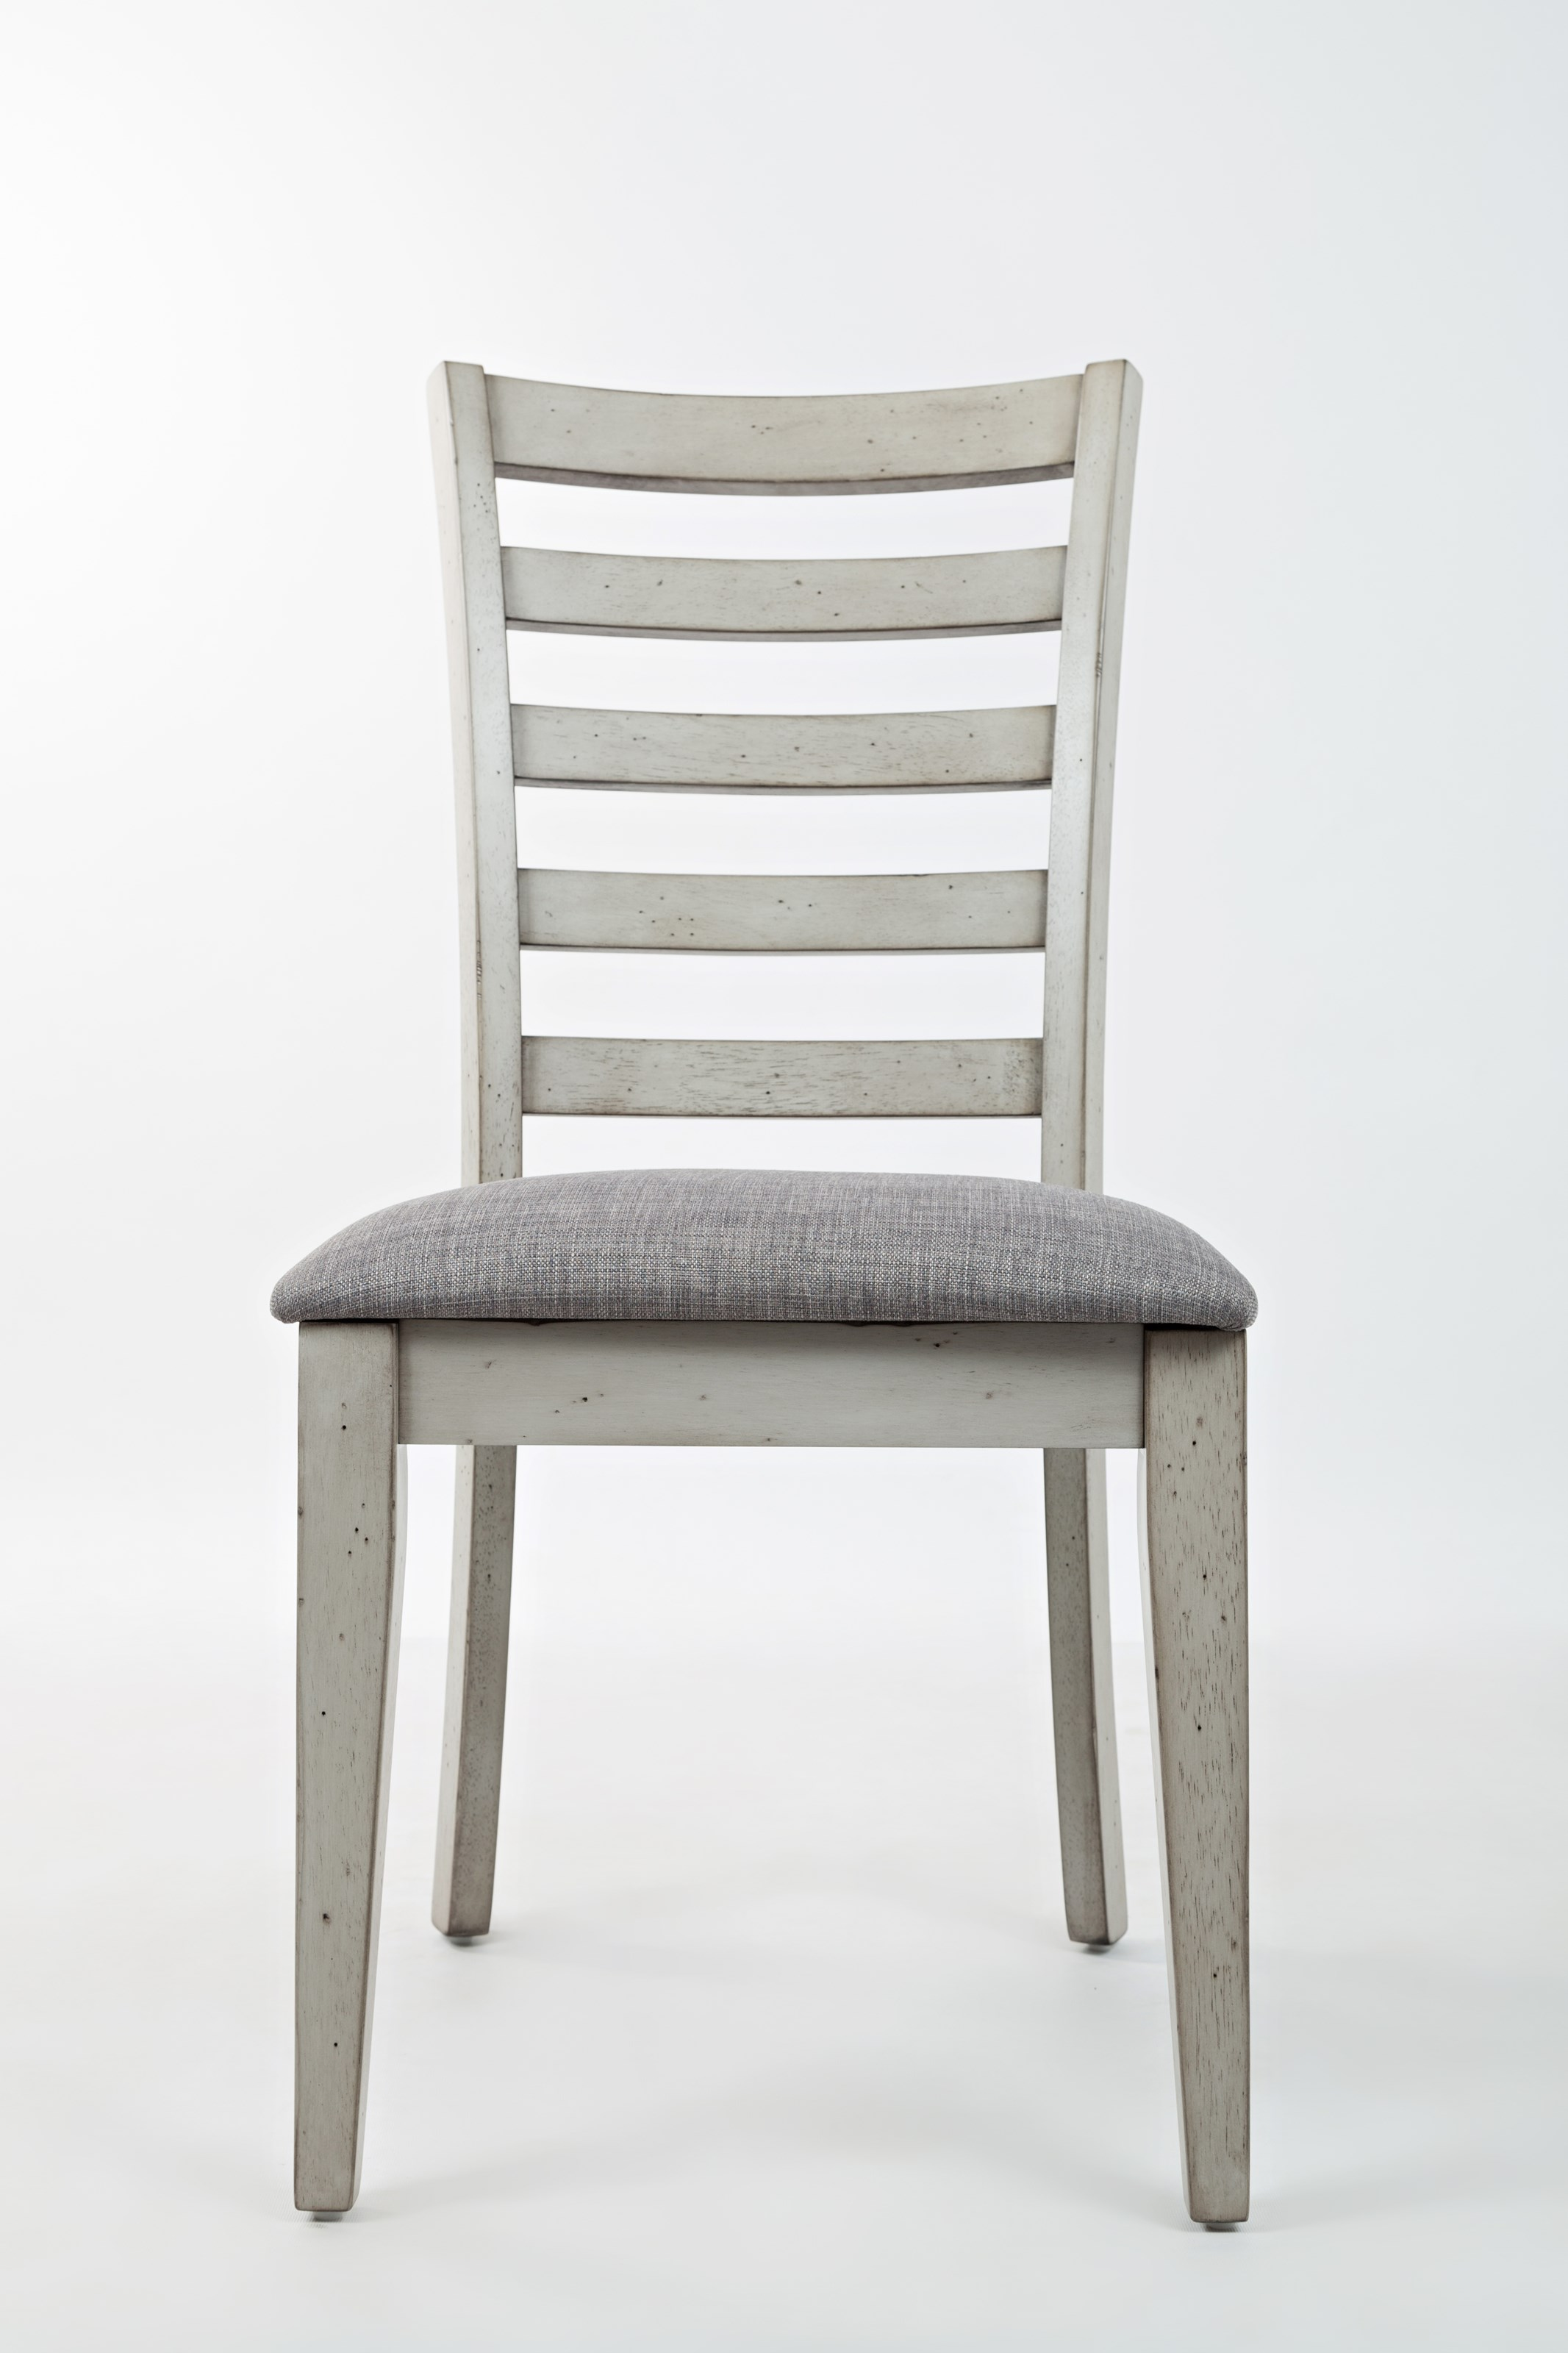 Sarasota Springs Ladder Back Dining Chair wi by Belfort Essentials at Belfort Furniture